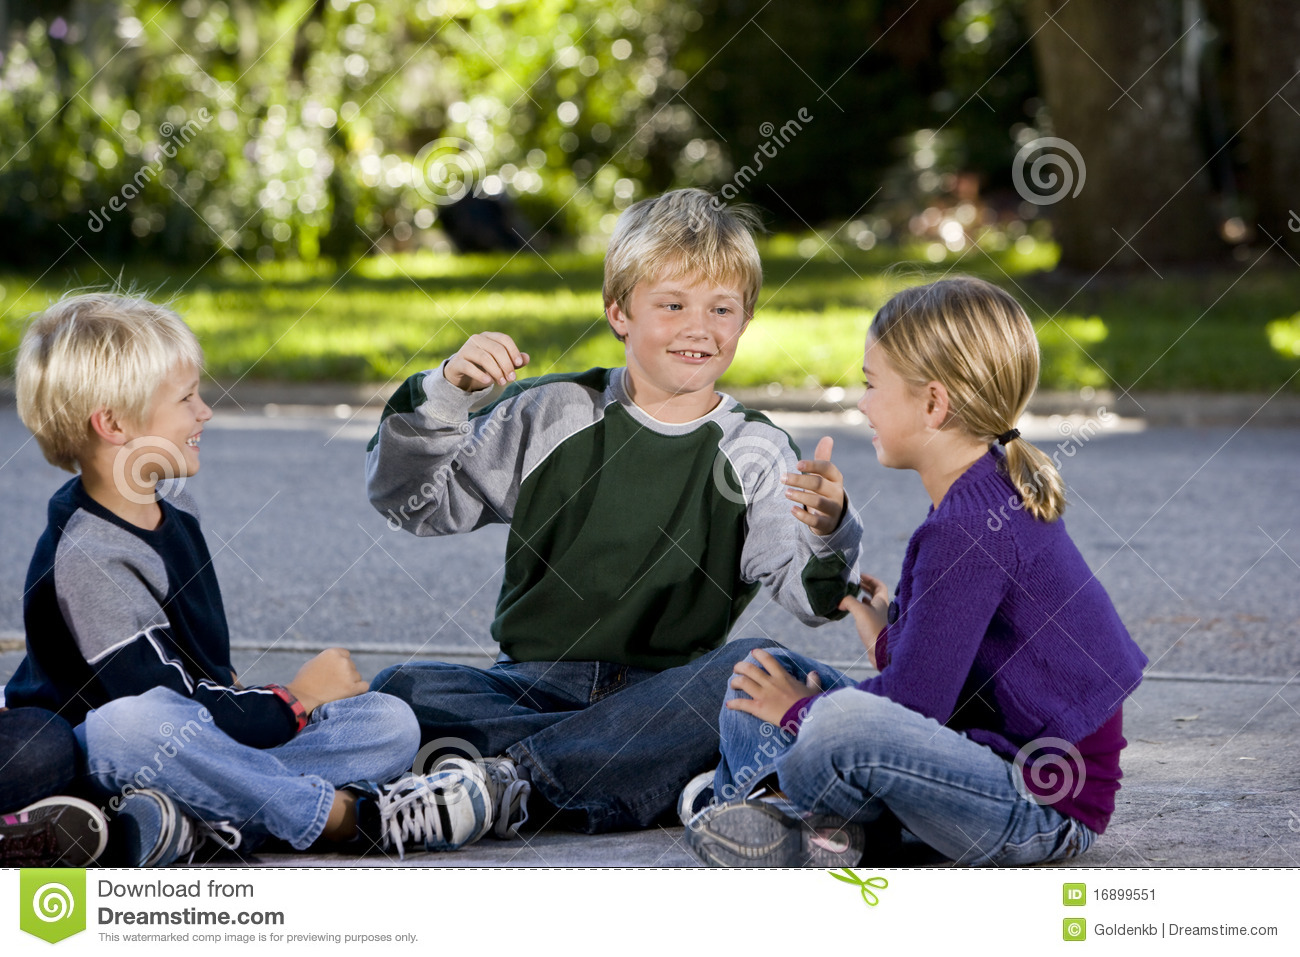 how to talk and be friends with older kids